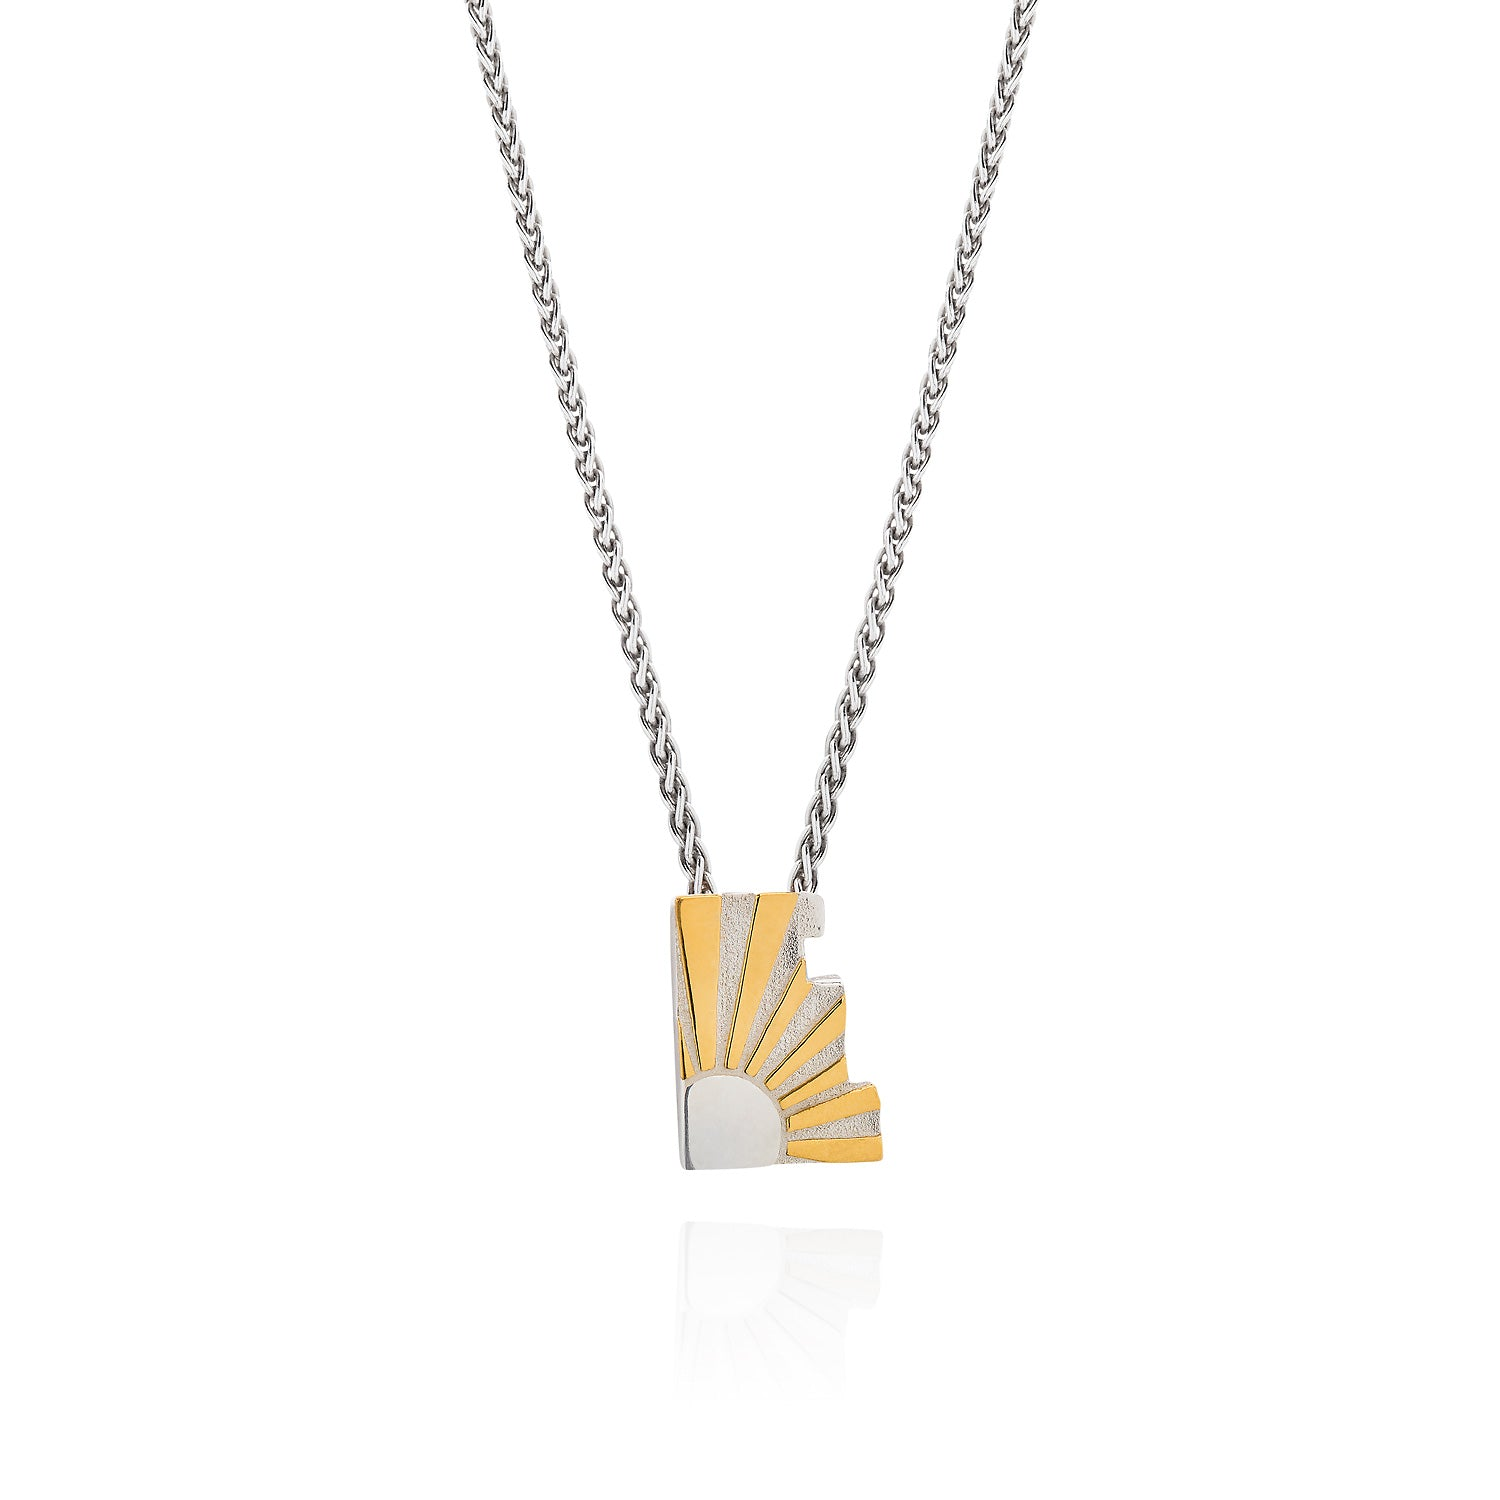 Art Deco Initial Silver Necklace by Yasmin Everley